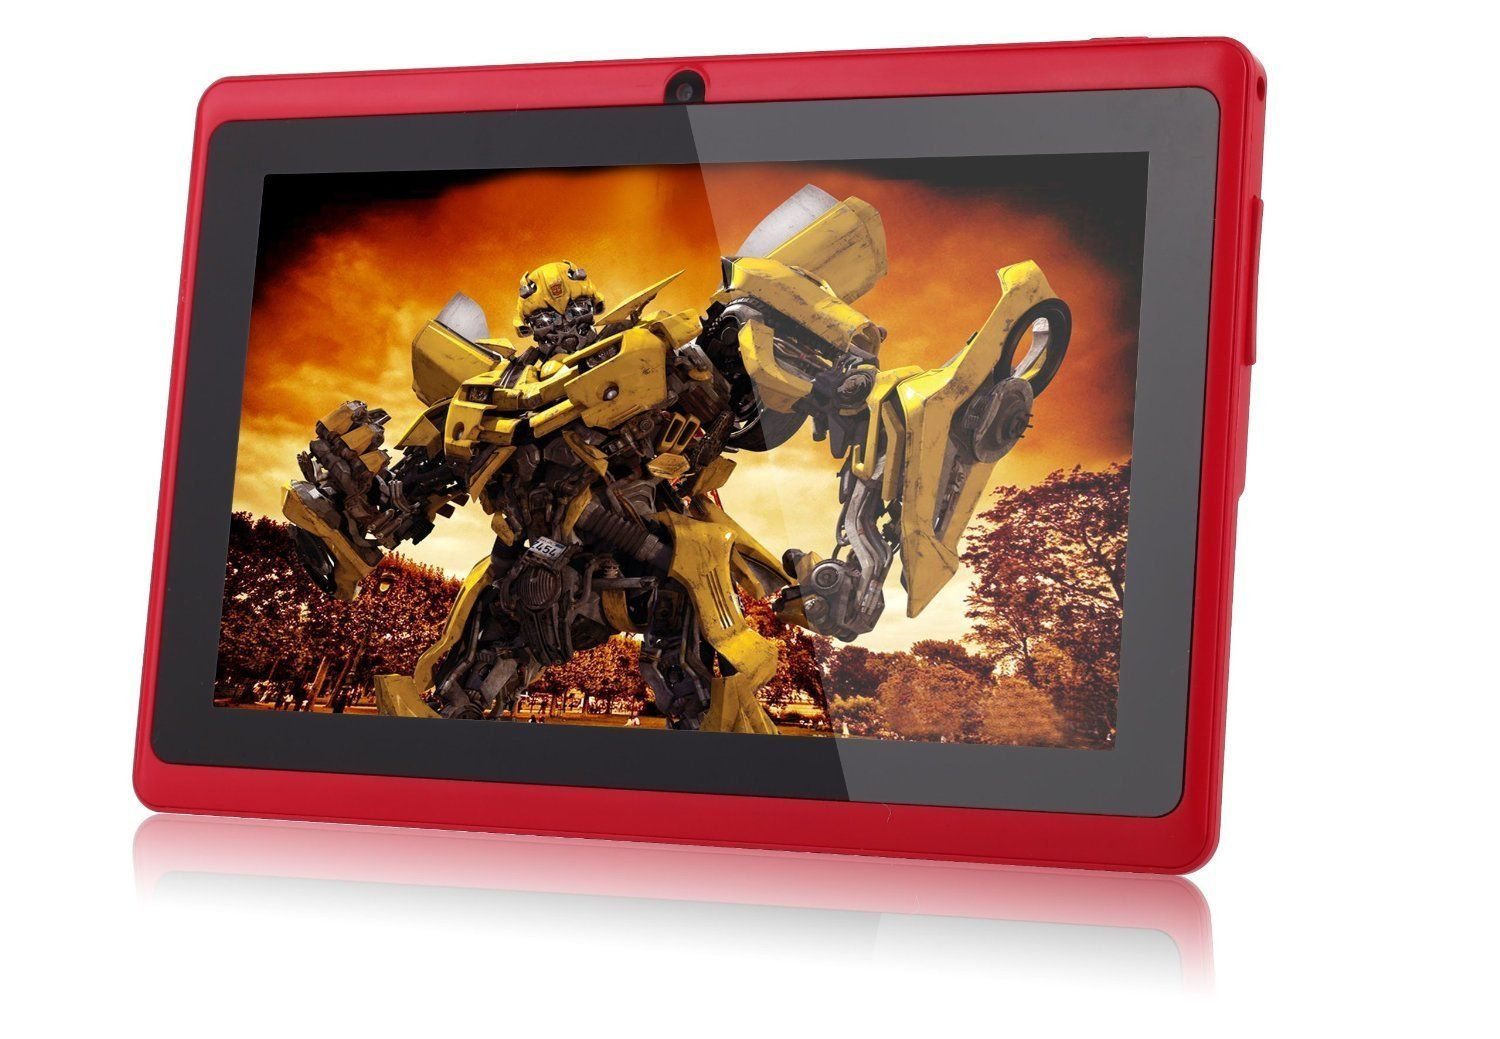 FastTouch(TM) 7'' Tablet PC 4GB - RED, Allwinnwer A13 Boxchip Cortex A8 Android 4.1, 512MB Ram, Multiple Touch...